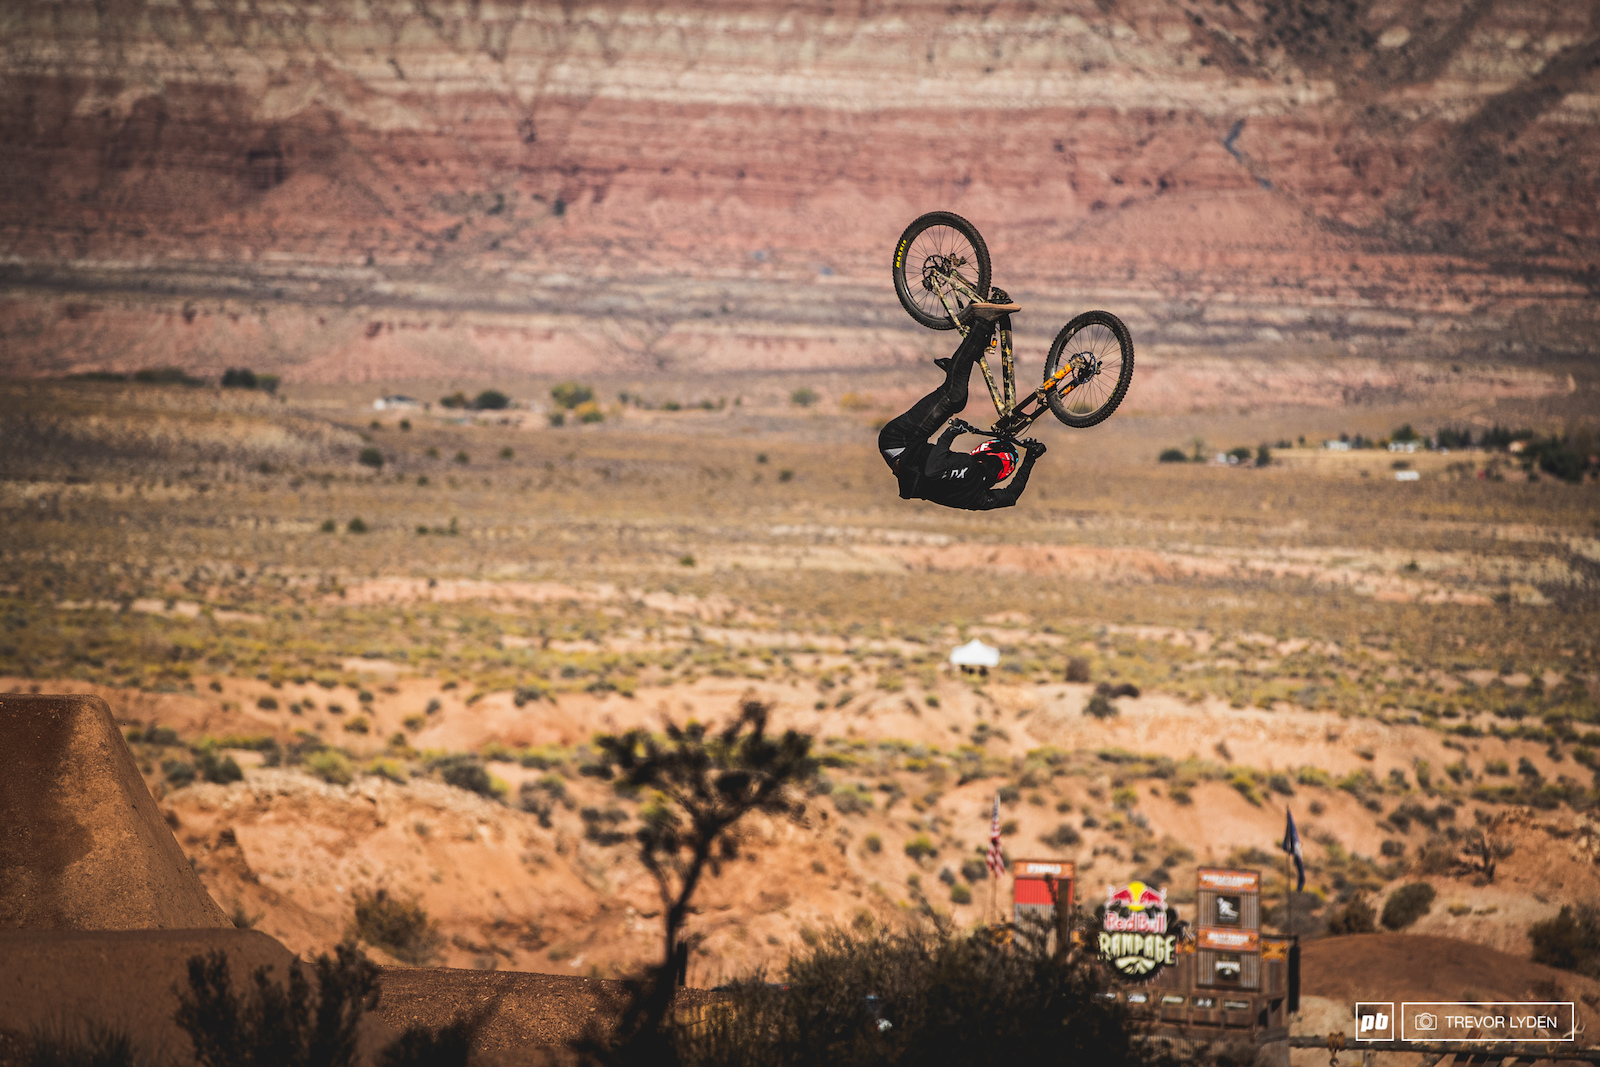 Brett Rheeder with a backflip look through.